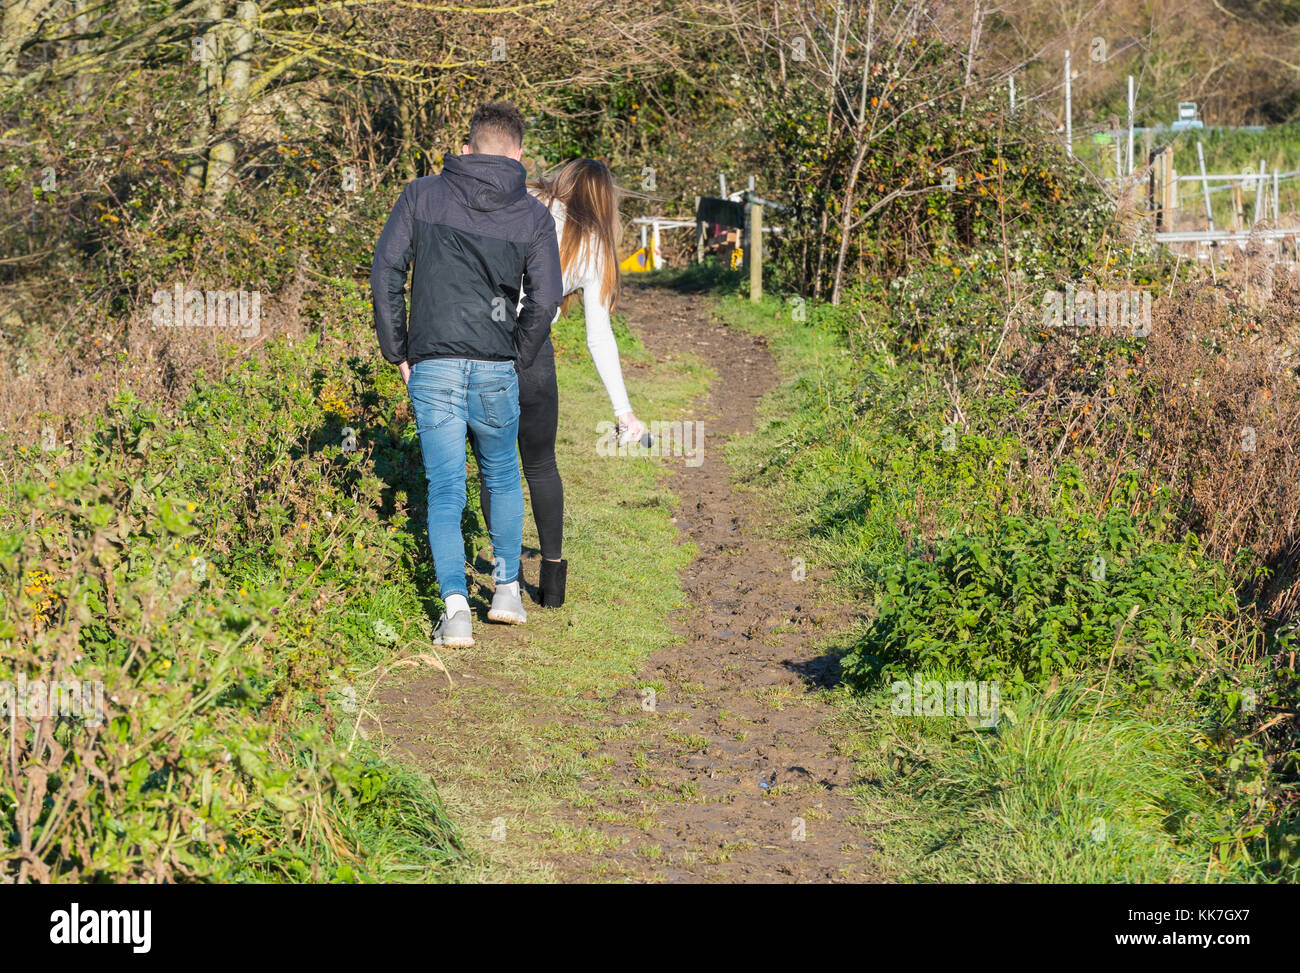 Young couple walking along a muddy towpath trying to avoid the mud. - Stock Image